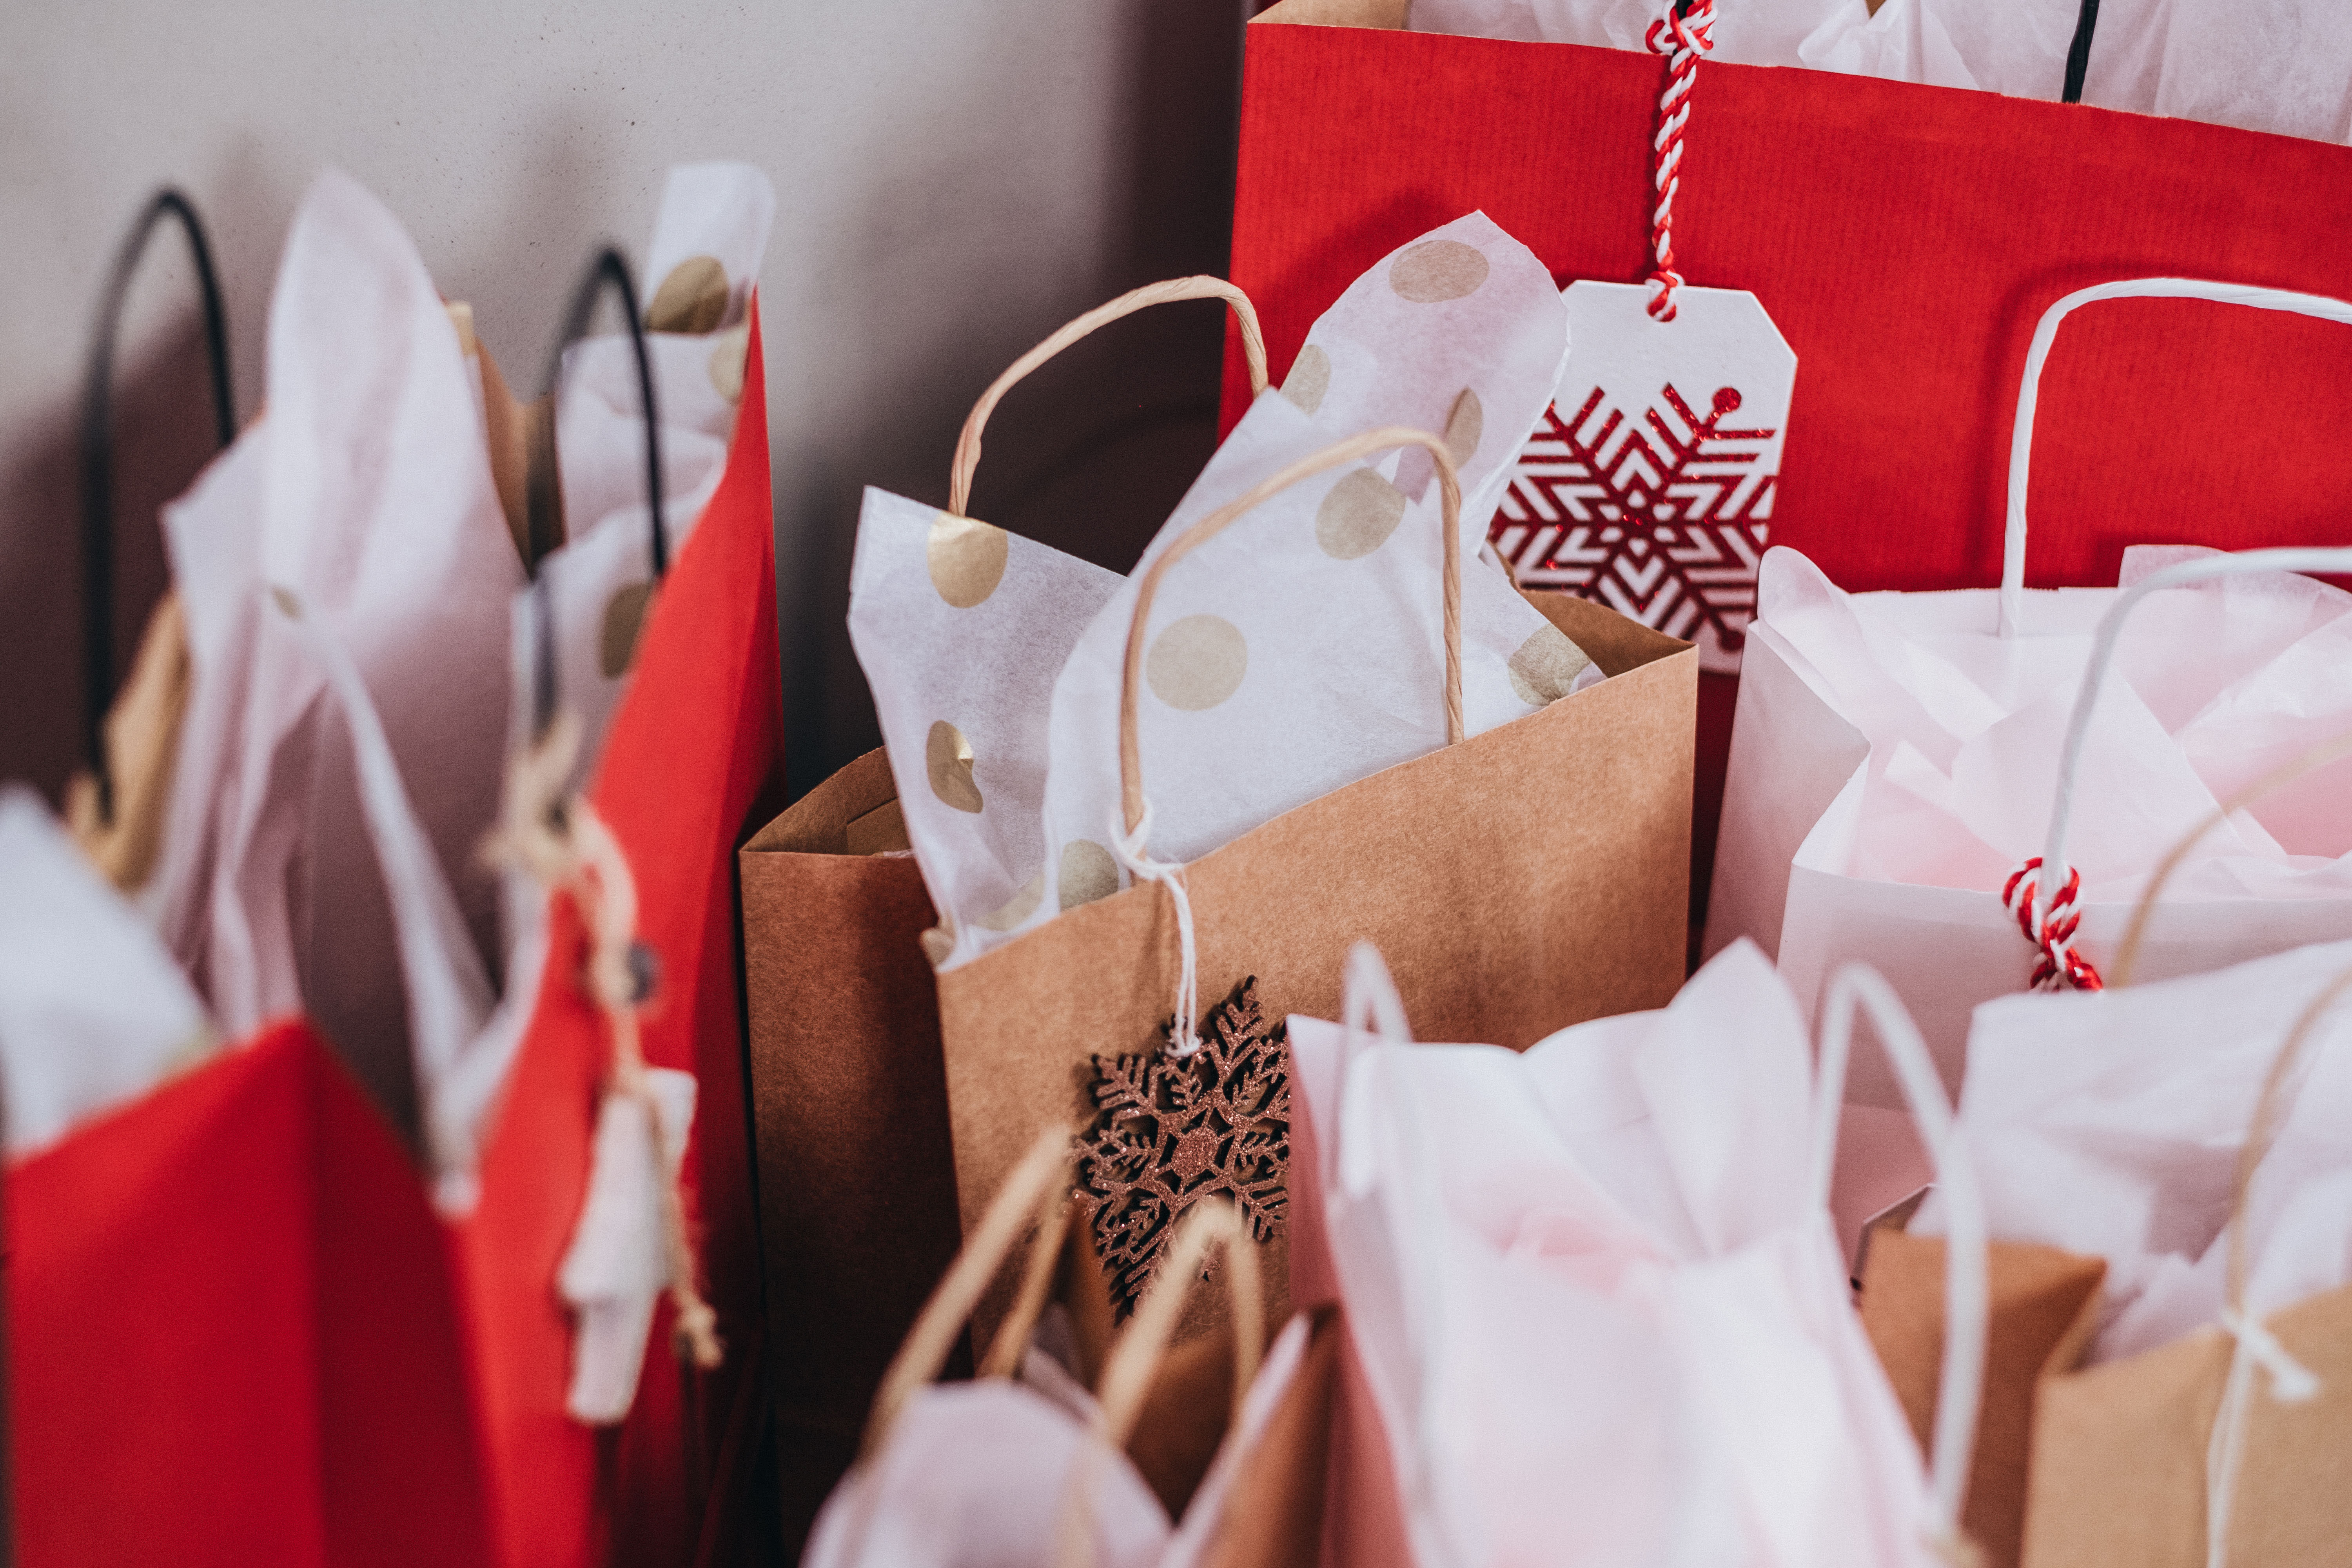 Seasonal shopping 2017: The network in numbers